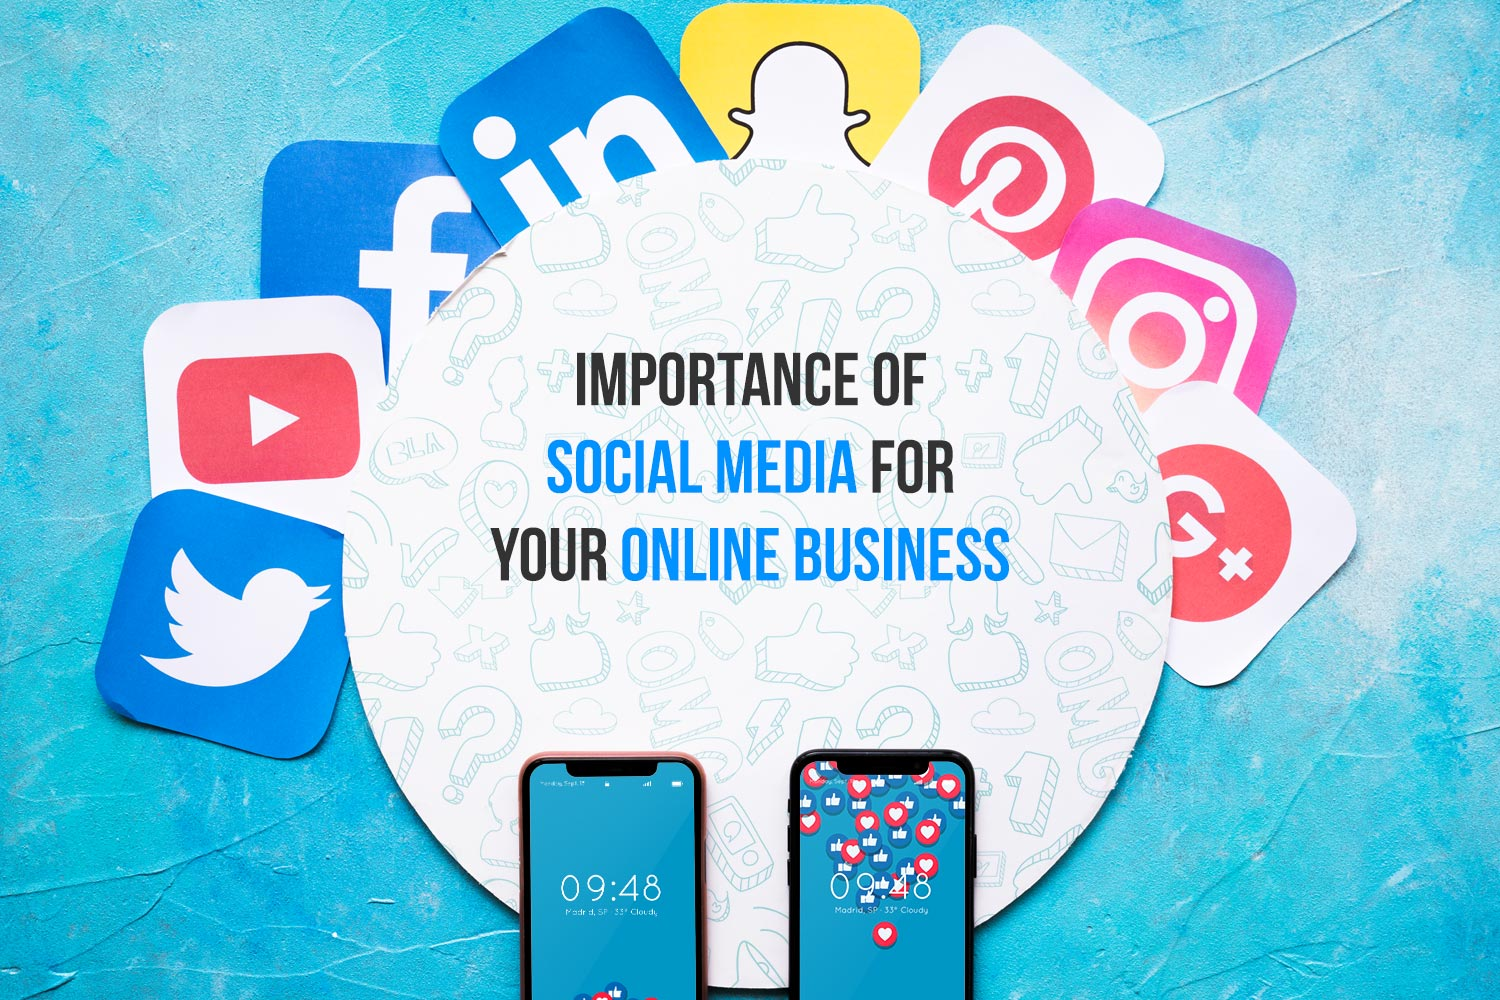 importance-of-social-media-for-your-online-business